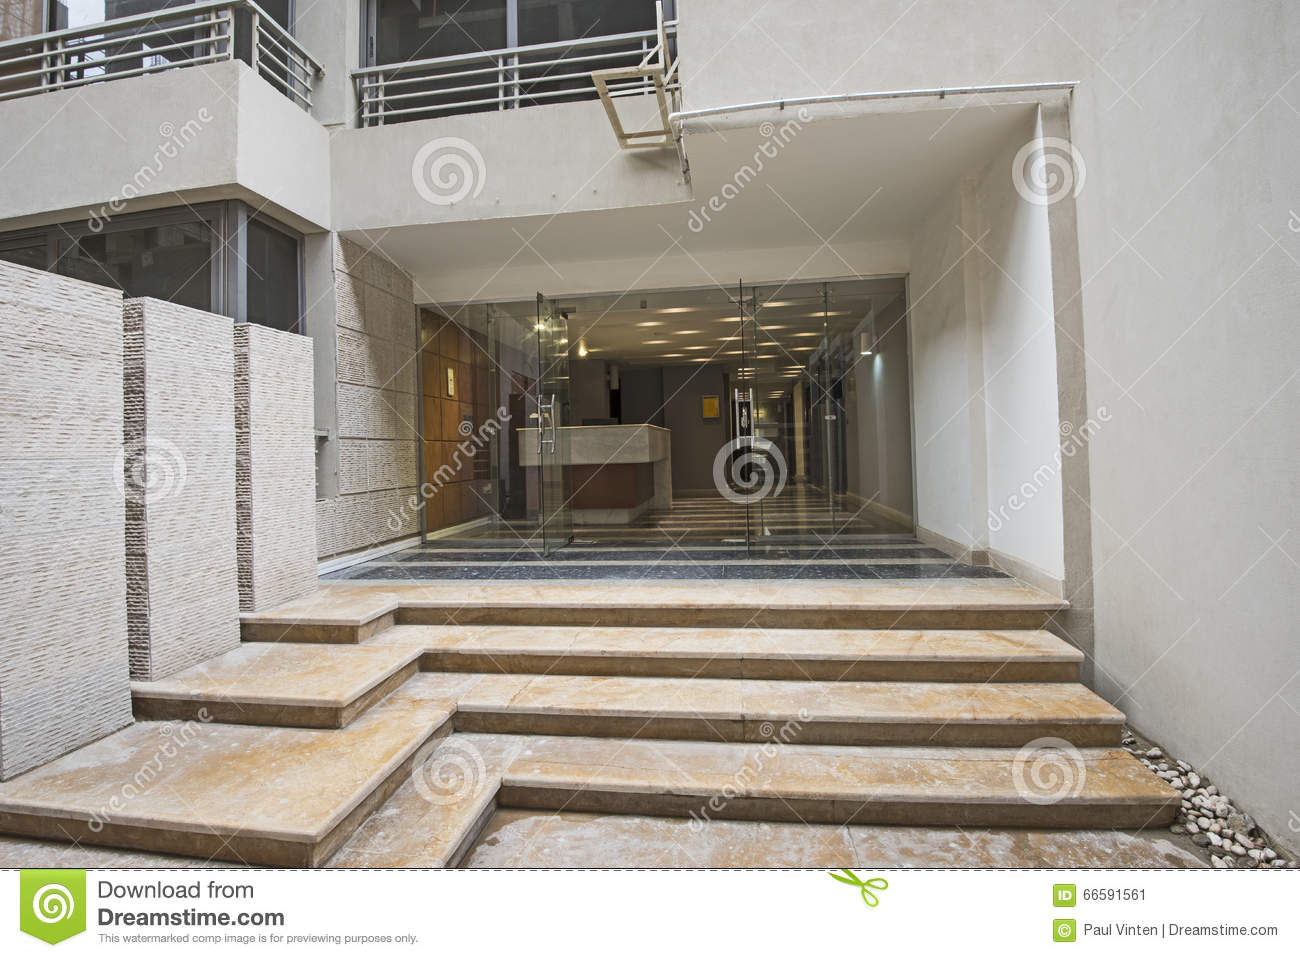 Download Entrance To A Luxury Apartment Building Stock Image   Image Of  Floor, Architecture: